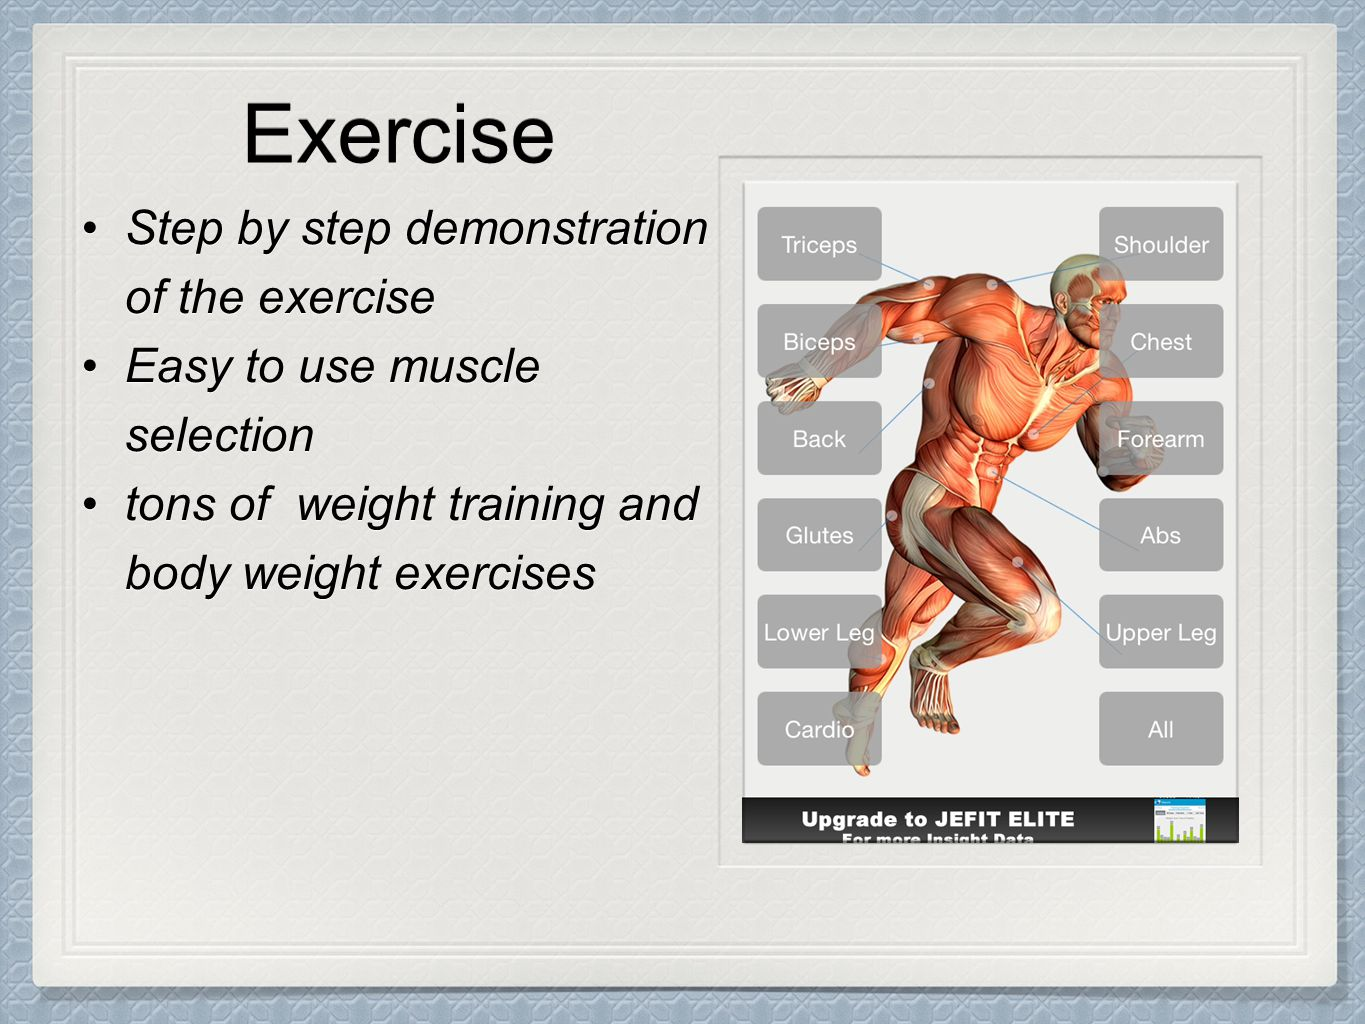 Exercise Step by step demonstration of the exerciseStep by step demonstration of the exercise Easy to use muscle selectionEasy to use muscle selection tons of weight training and body weight exercisestons of weight training and body weight exercises